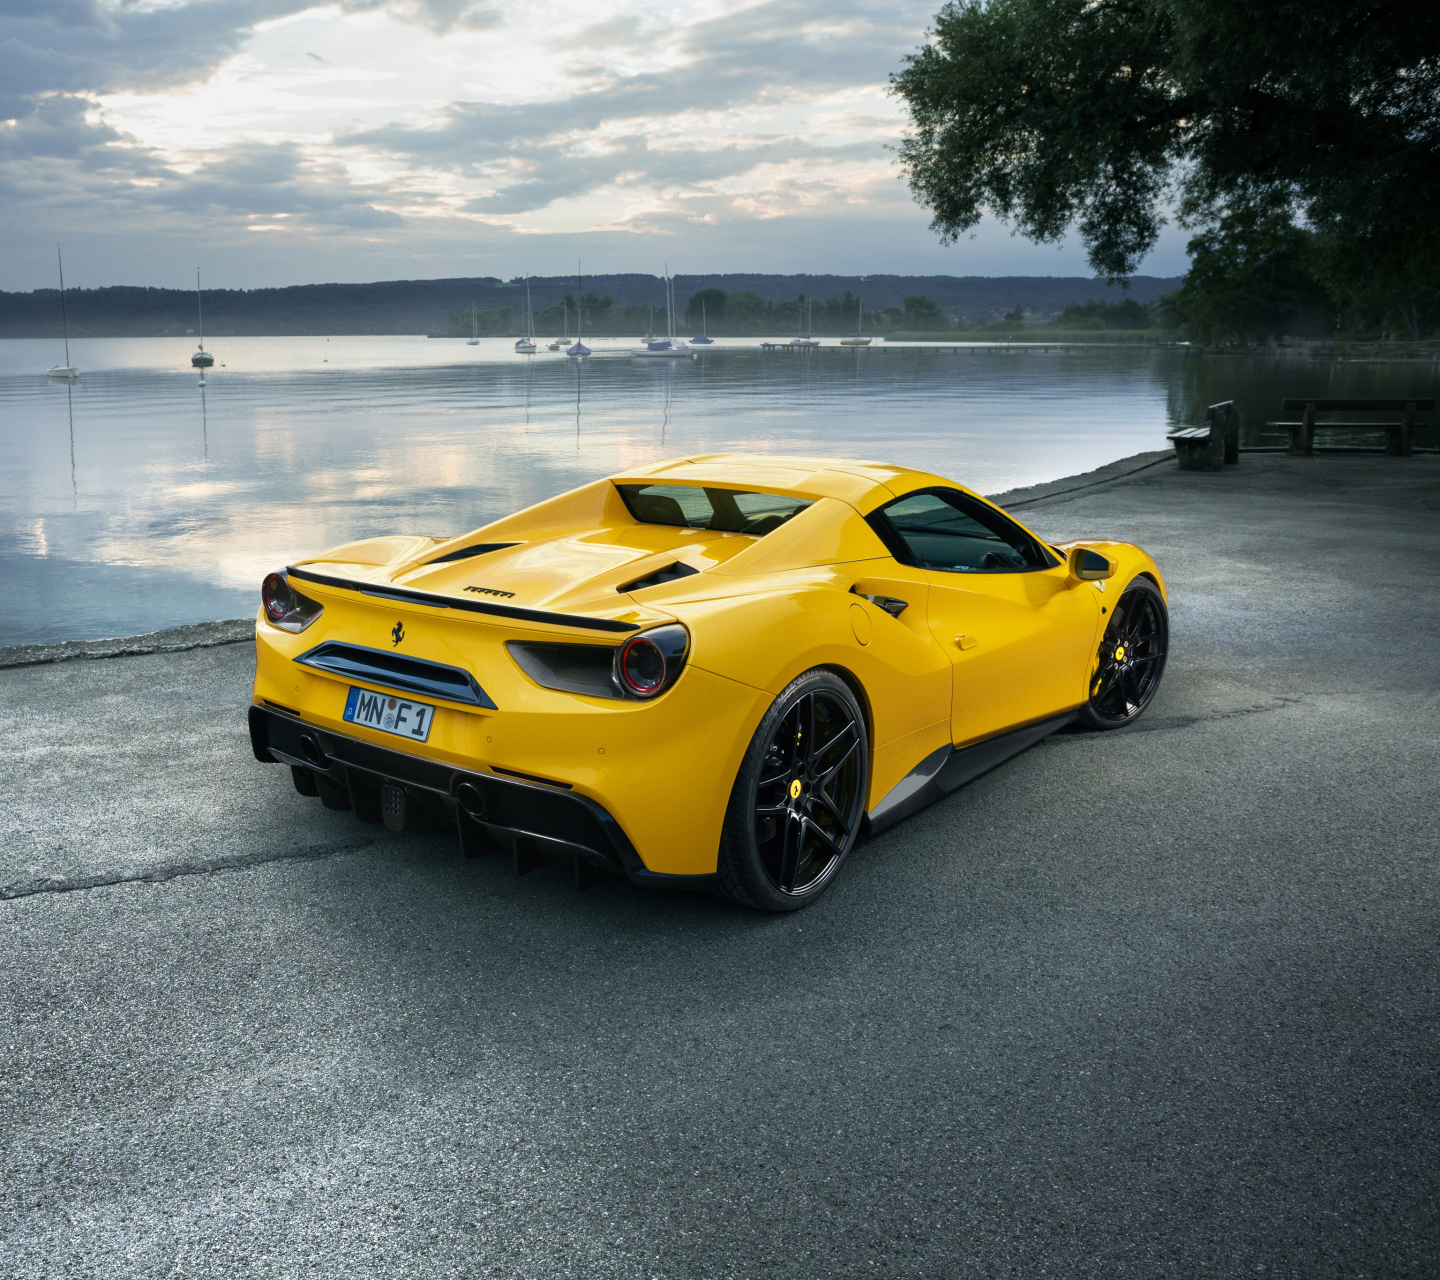 Vehiclesferrari 488 spider 1440x1280 wallpaper id 673746 vehicles ferrari 488 spider 1440x1280 mobile wallpaper voltagebd Image collections